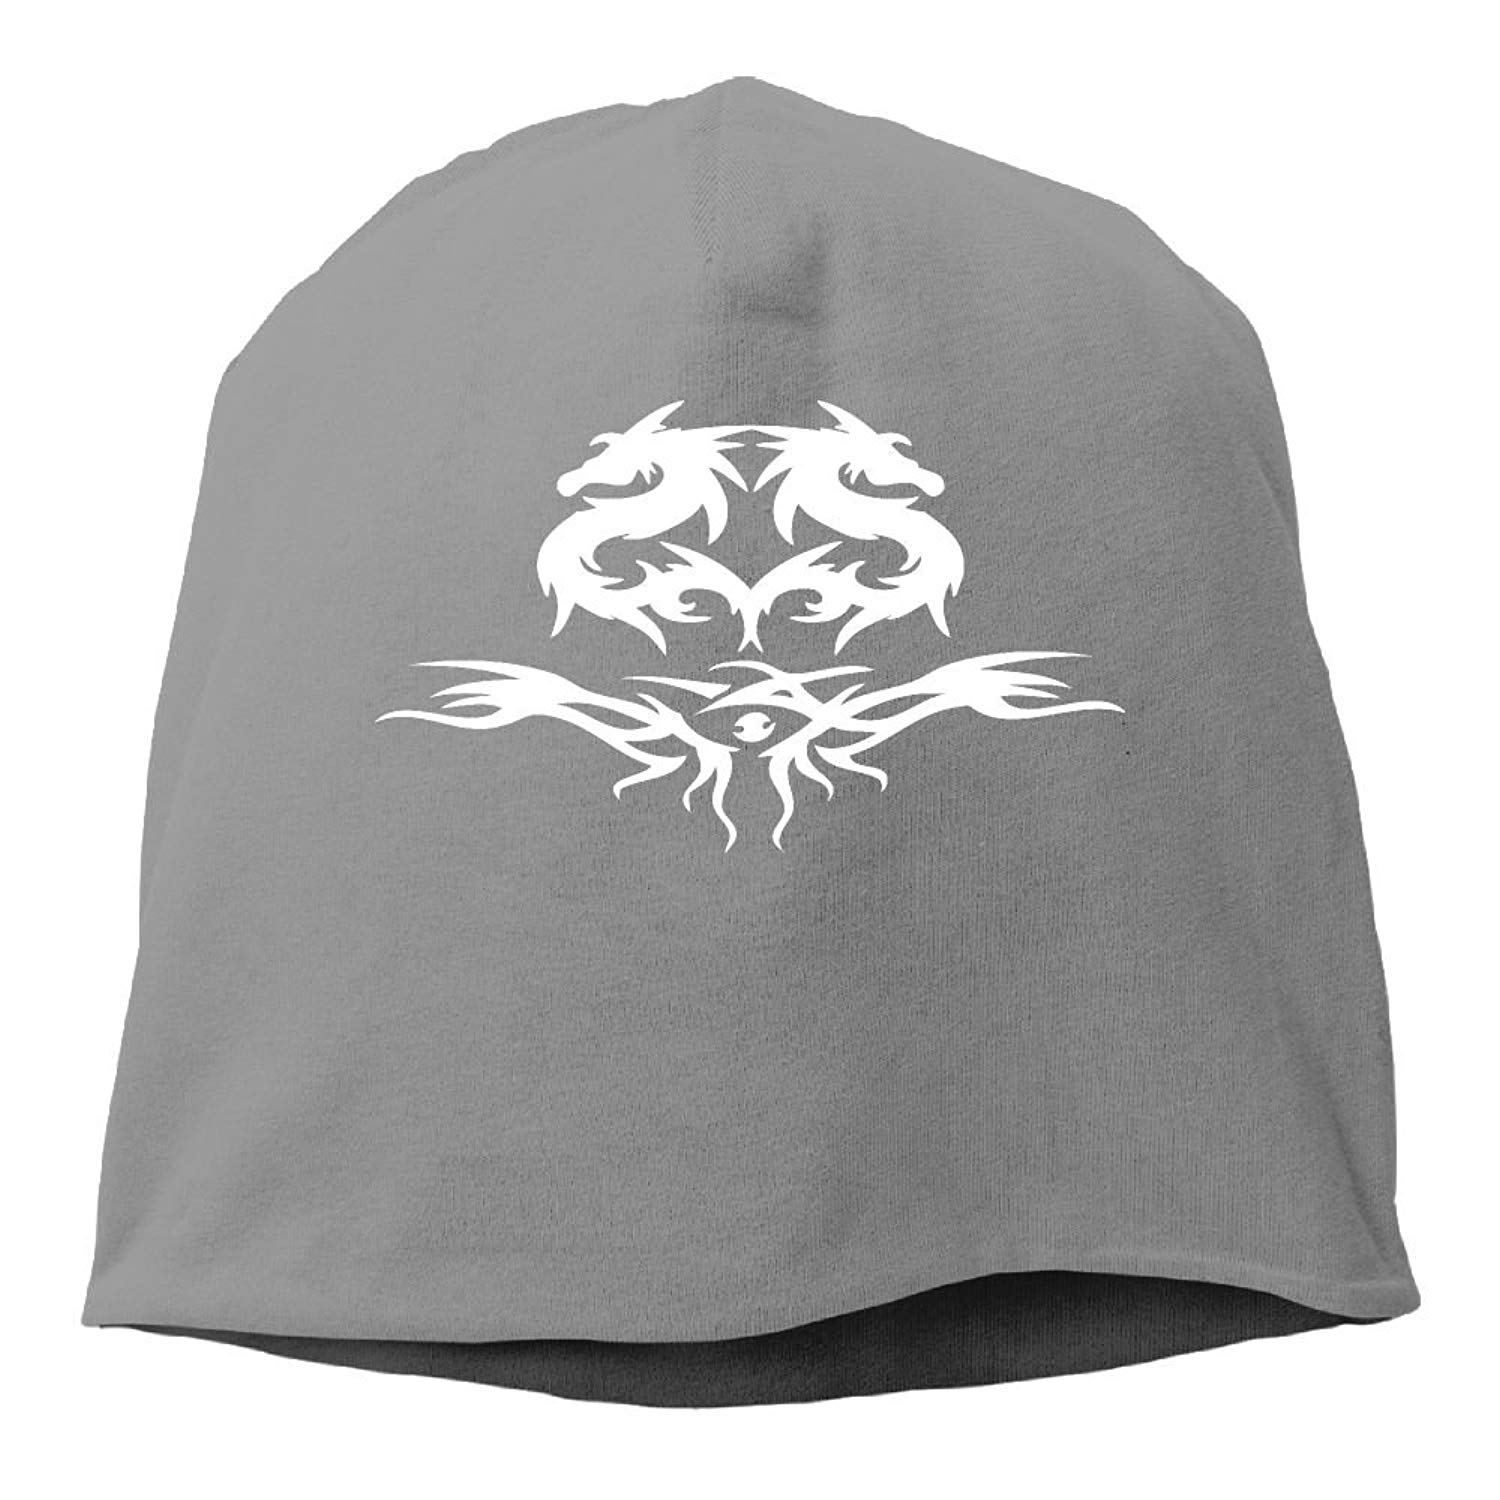 6db8b073ff8c4 Get Quotations · YUTtr Chinese Dragon Unisex Knitting Hats Soft Stretch  Beanie Skull Hedging Caps